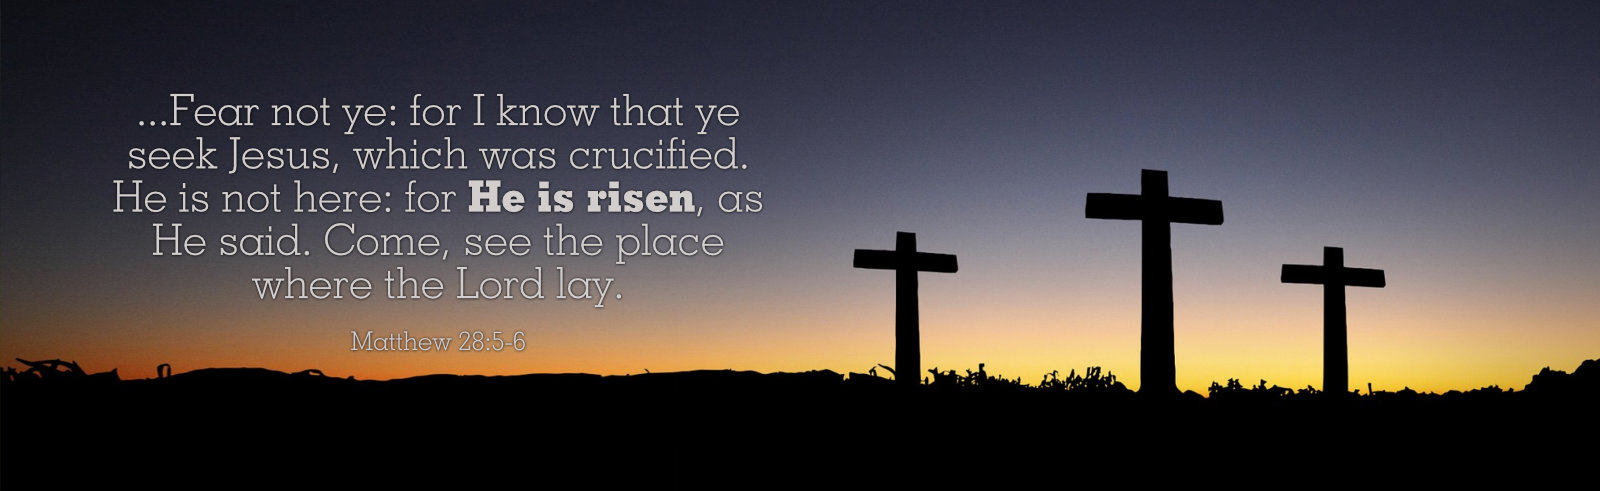 Fear not ye for I know that ye seek Jesus, which was crucified. He is not here: for He is risen, as He said. Come, see the place where the Lord lay. Matthew 28 5-6